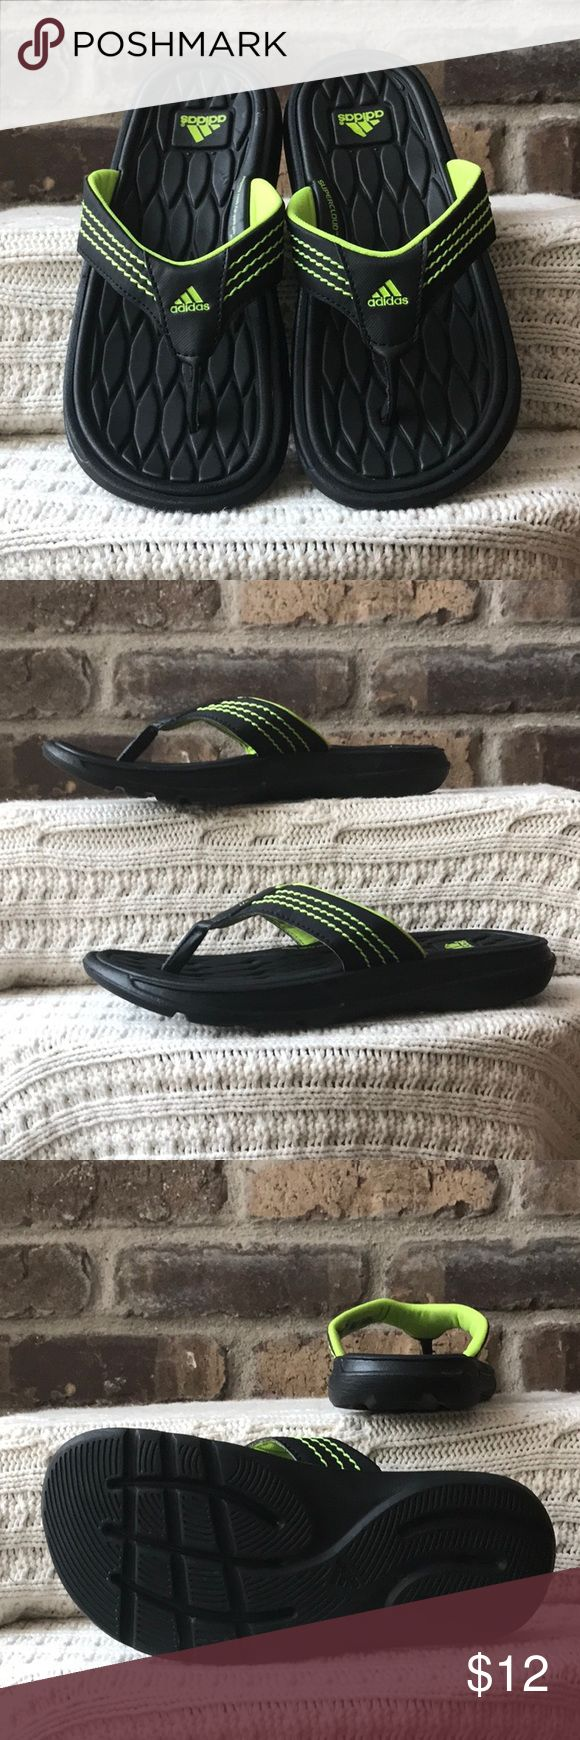 Adidas Flipflops Children's size 2 Adidas black and lime green flip-flops. They have been worn but are in very good condition adidas Shoes Sandals & Flip Flops